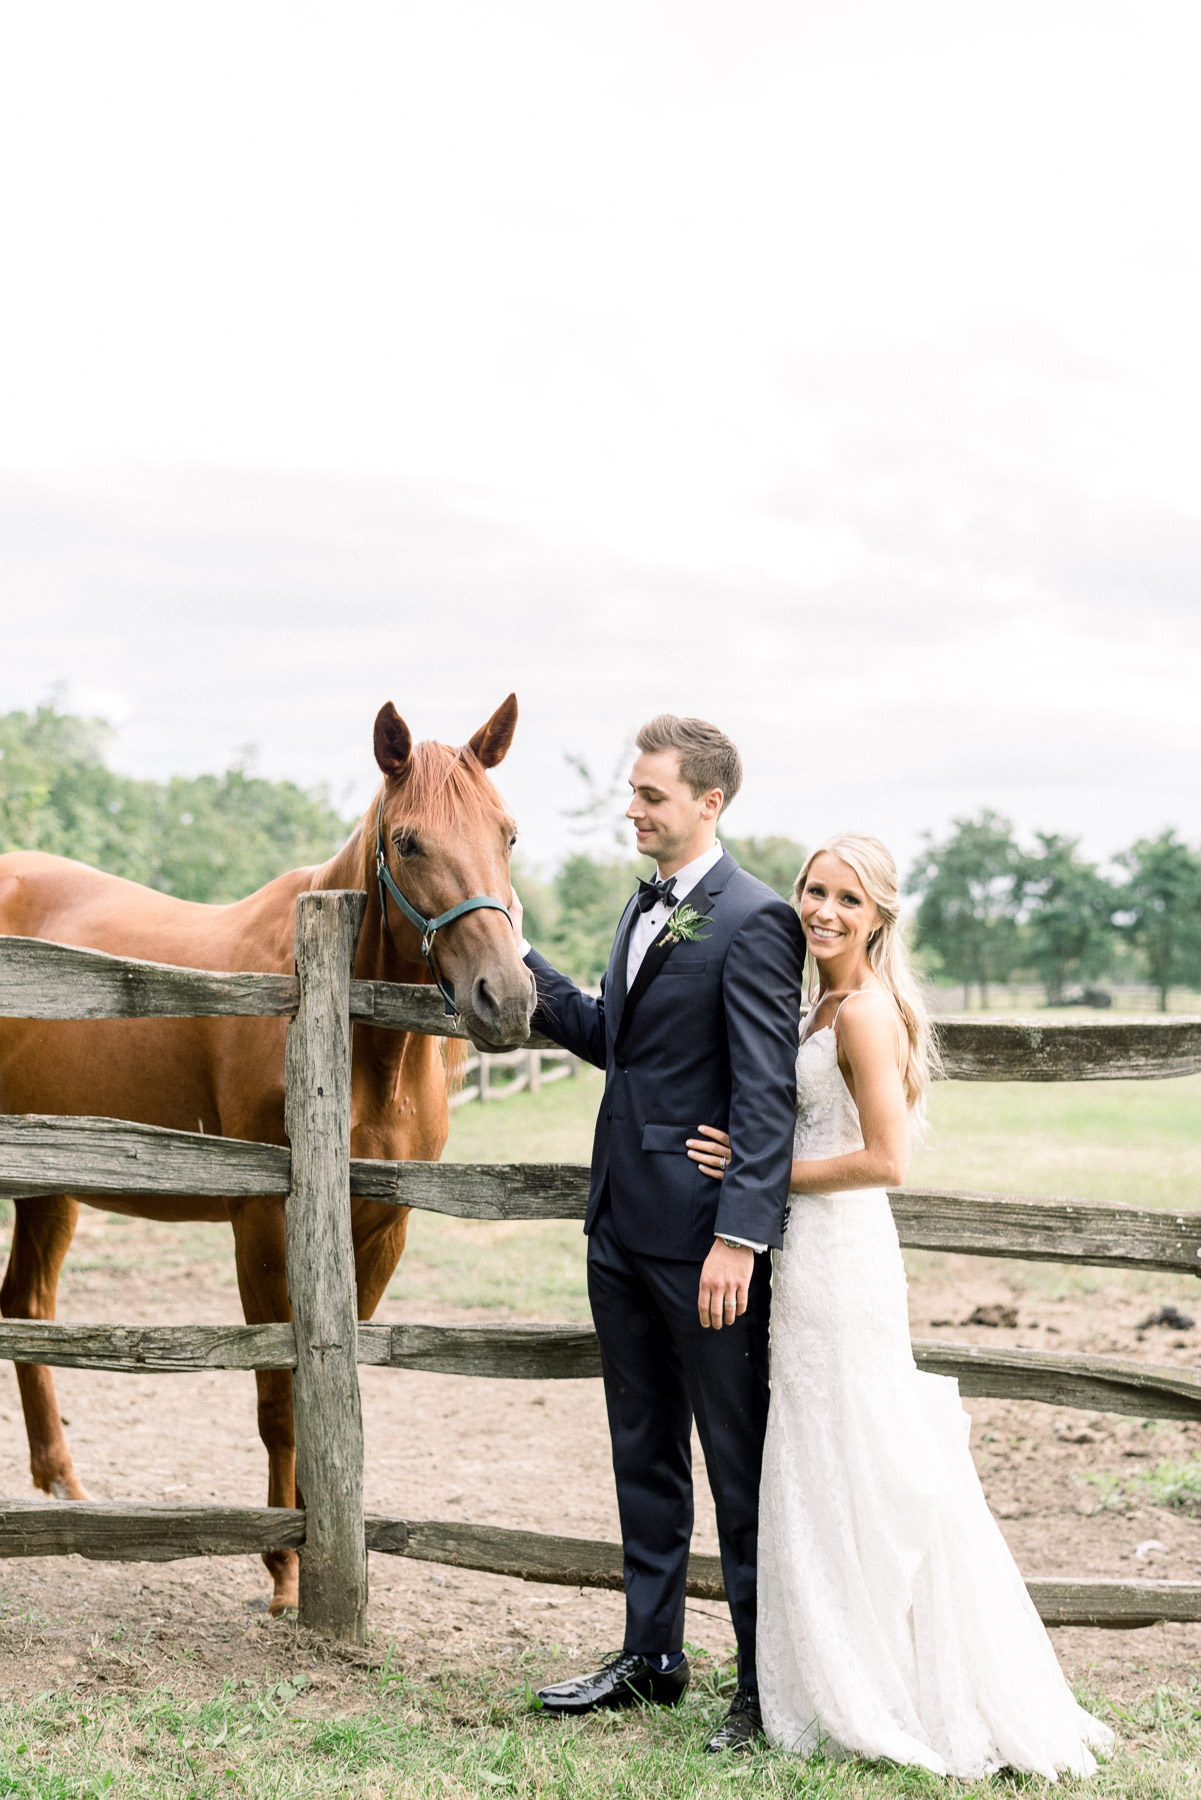 Private Island Upstate NY Wedding by Michelle Lange Photography-60.jpg